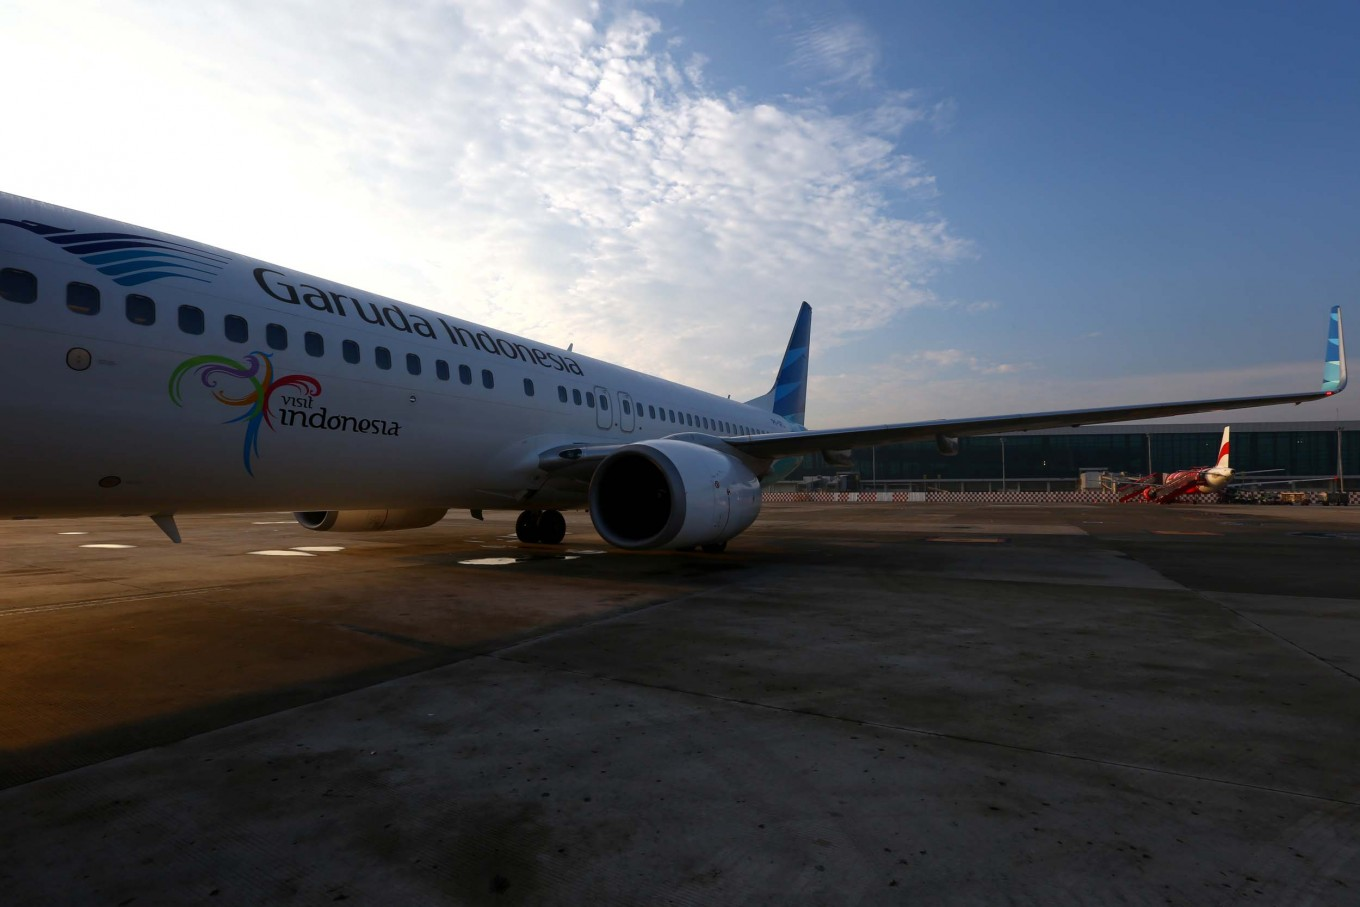 Not Snakes, but Lizards Escaped on Our Flight: Garuda Indonesia